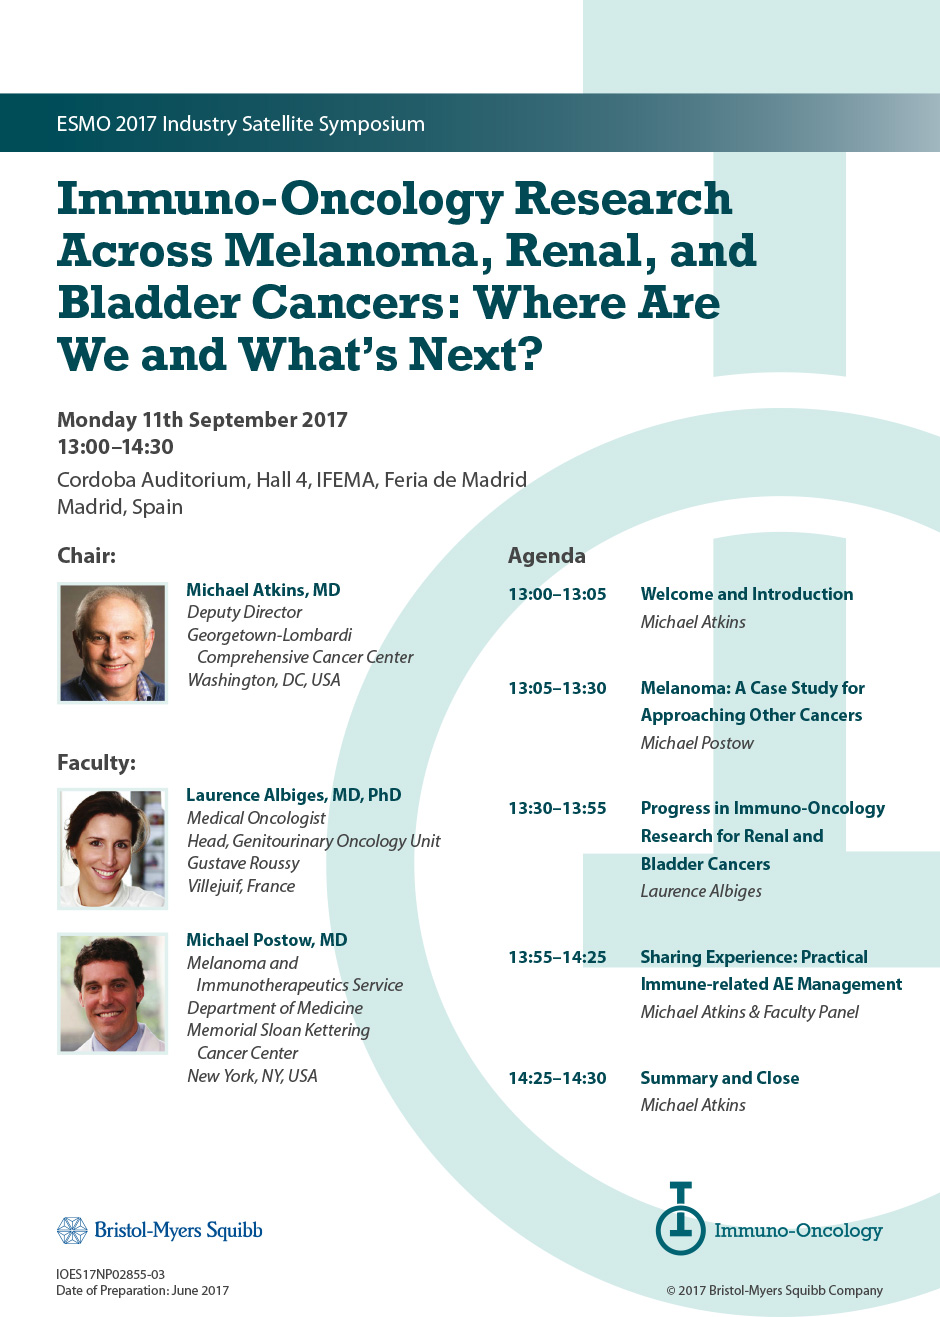 Immuno-Oncology Research Across Melanoma Renal and Bladder Cancers: Where Are and Whats Next